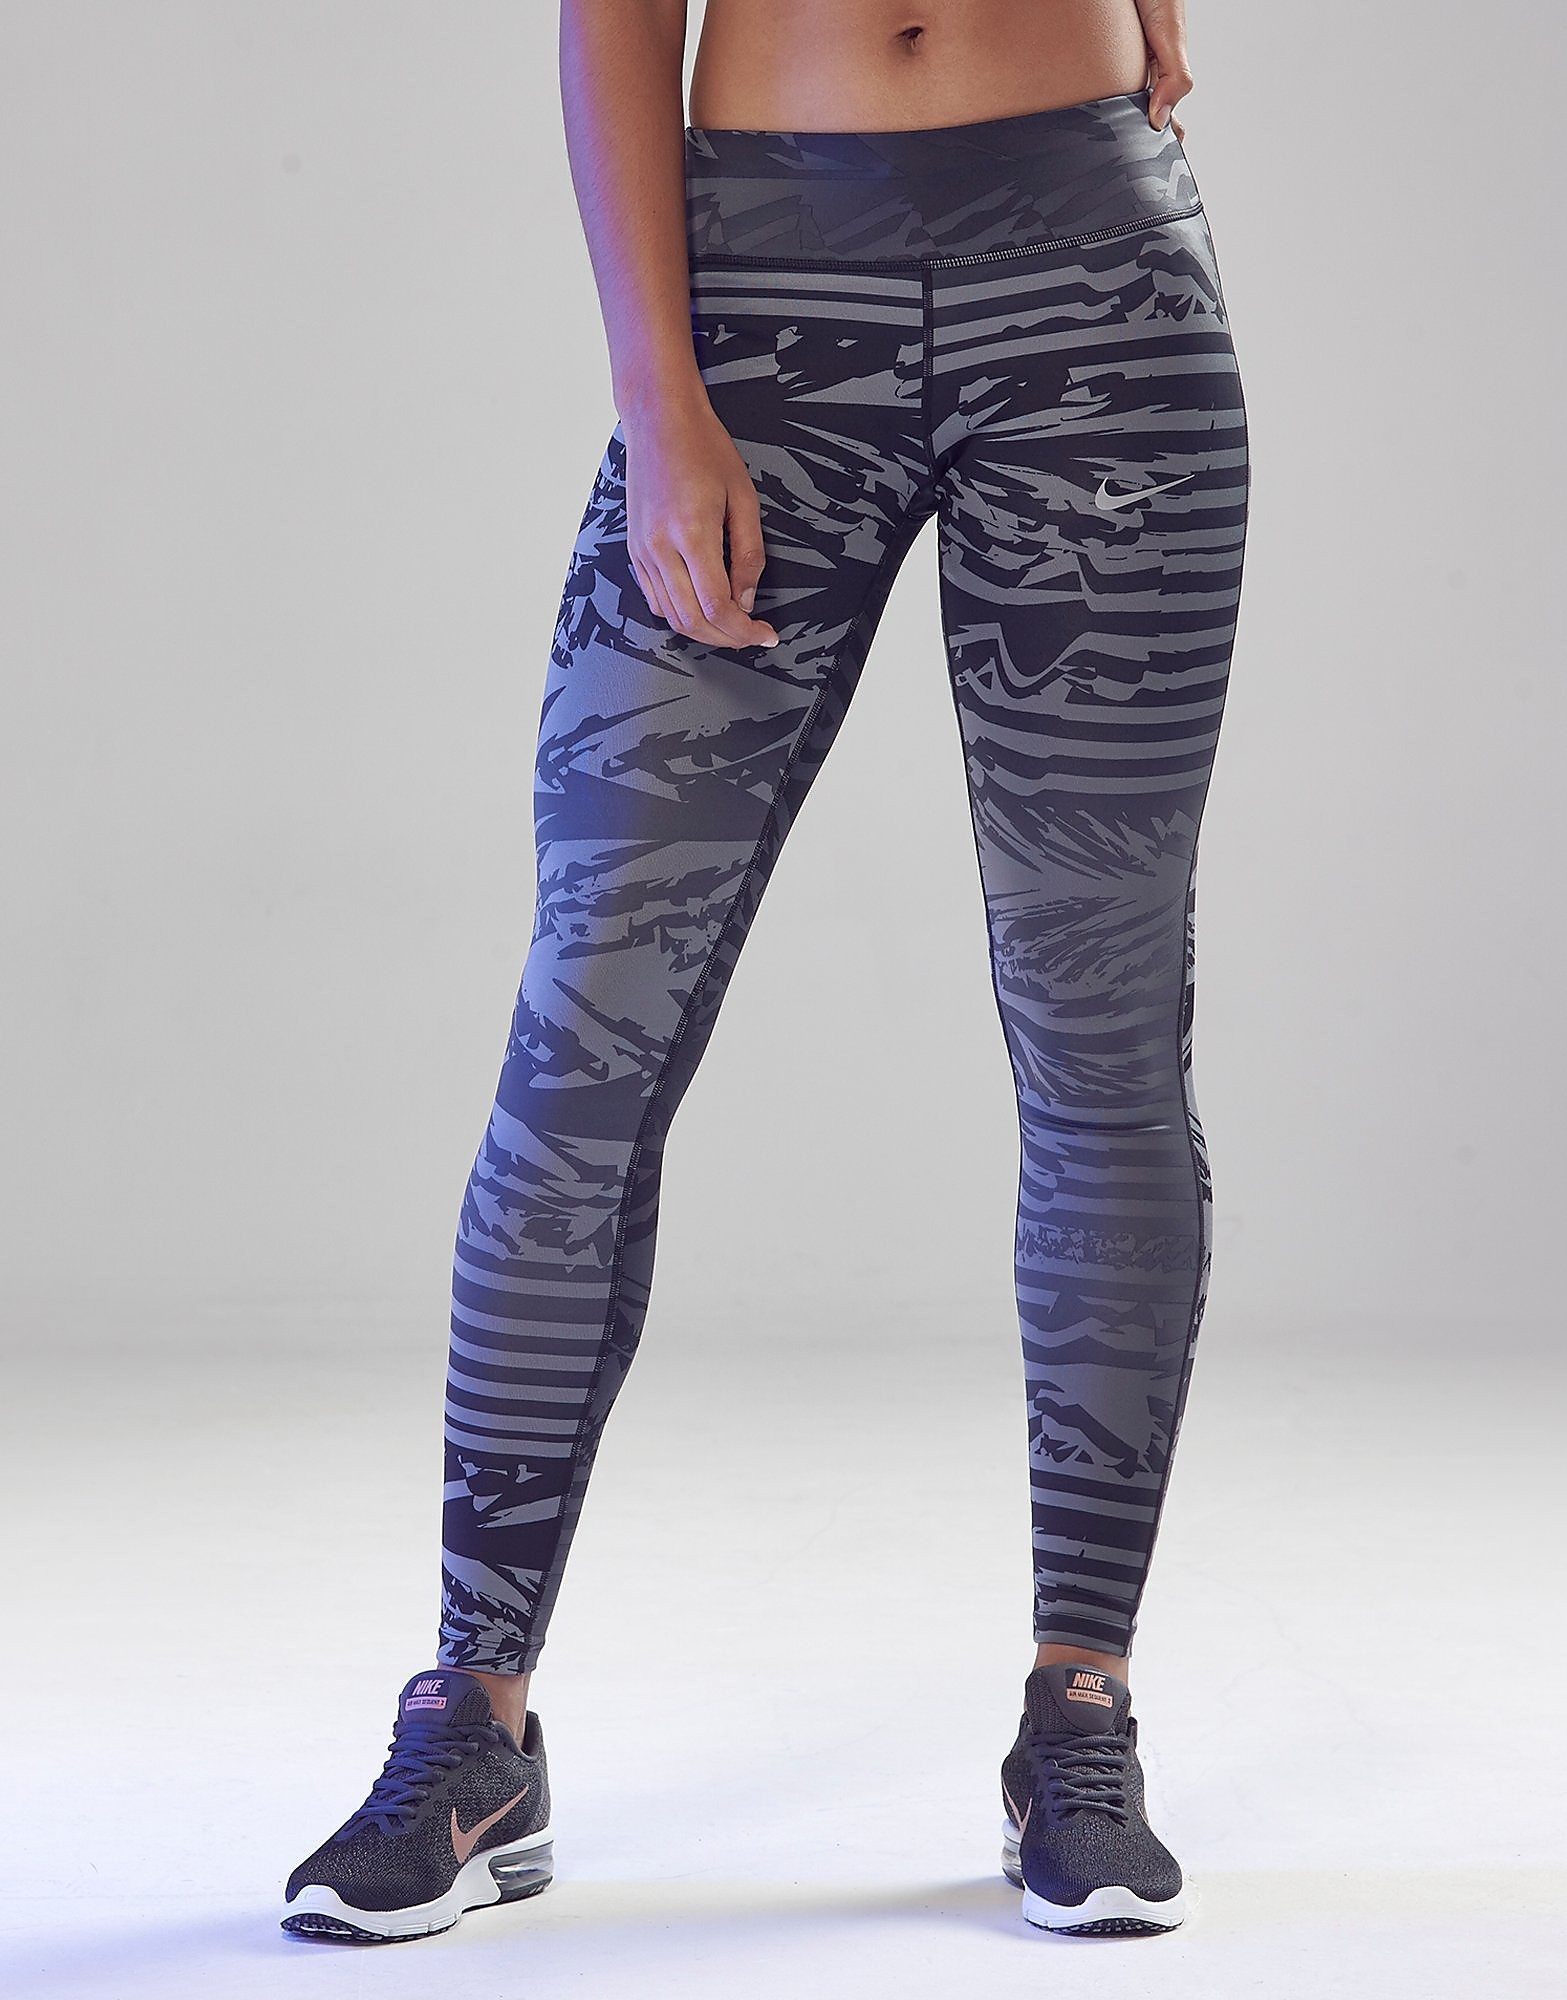 Nike Druck Essentials Lauf Leggins